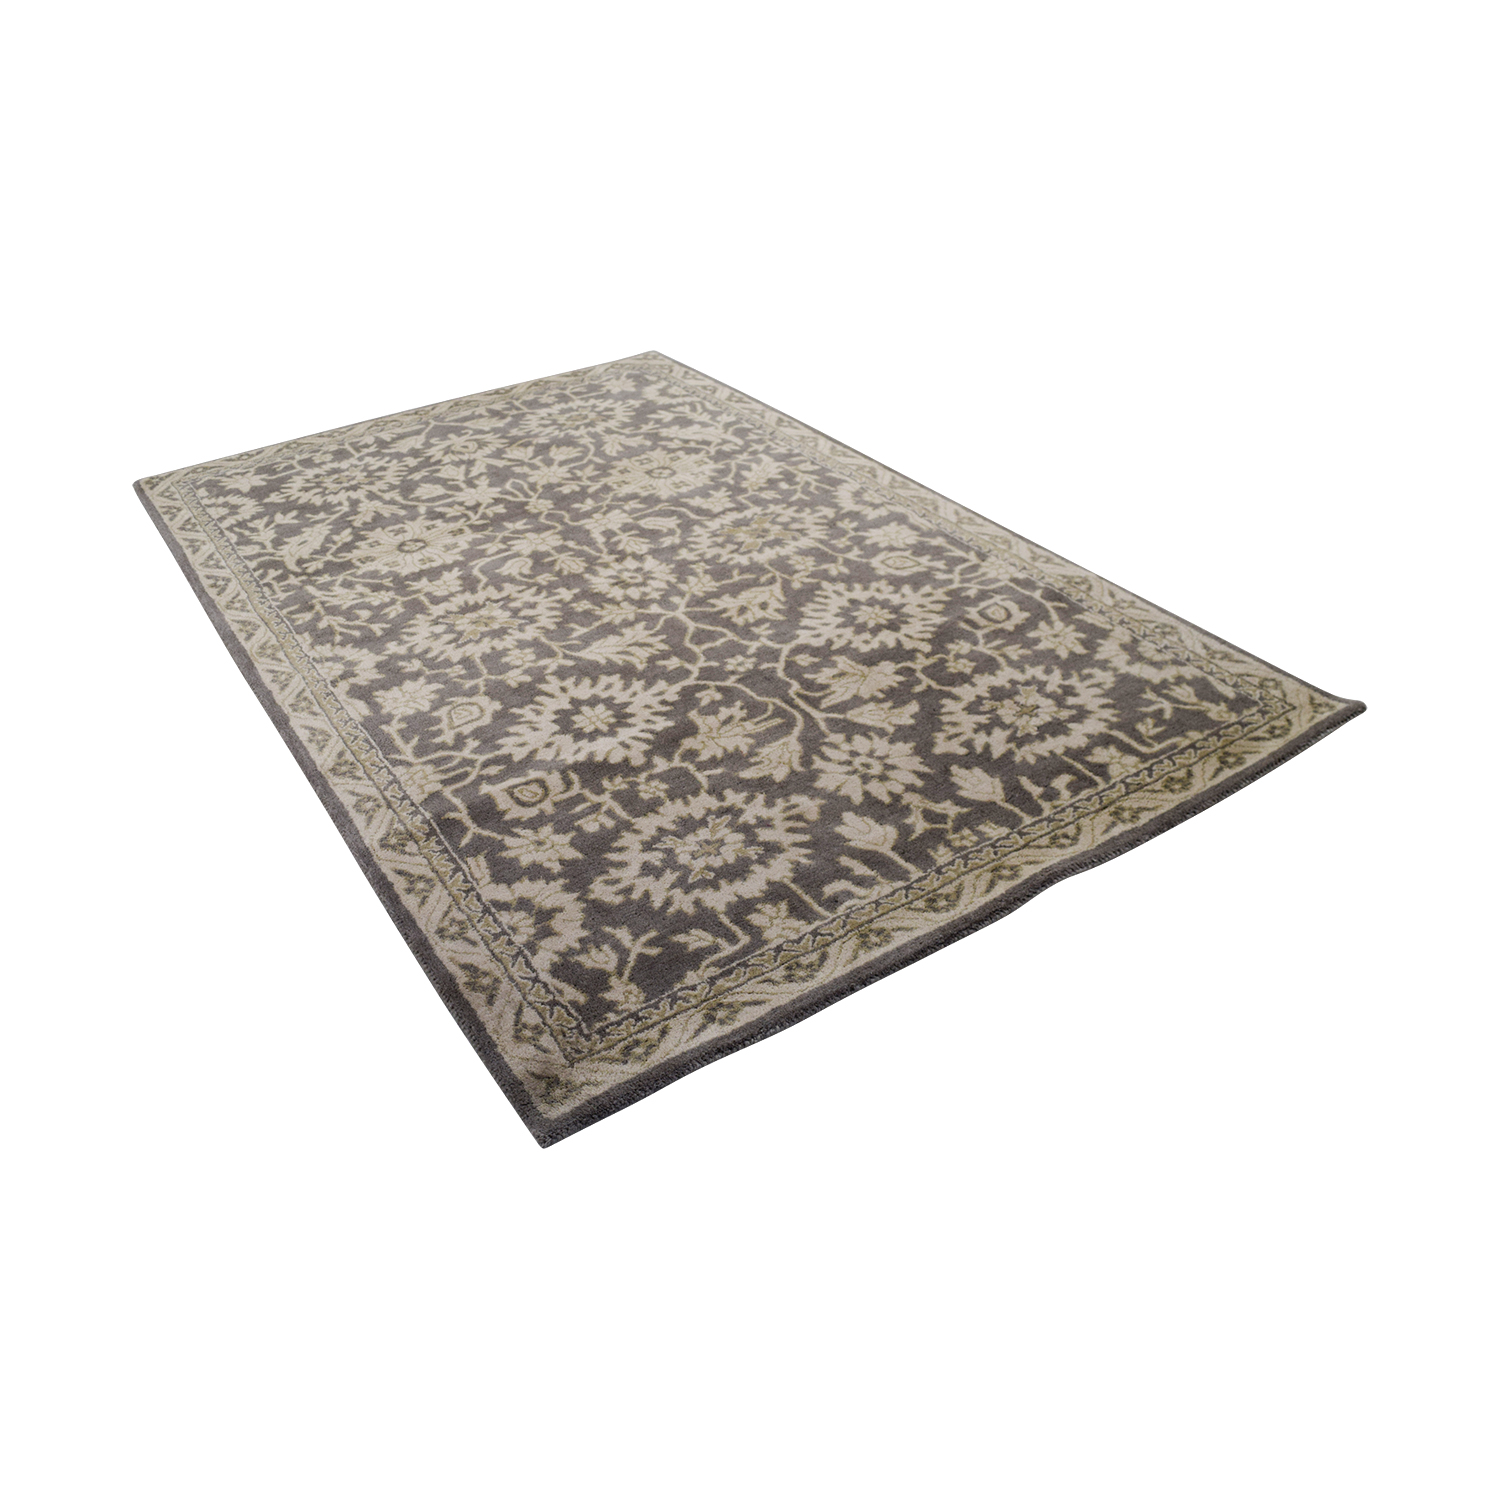 Obeetee Obeetee Floral Wool Rug Dark Grey/Light Grey